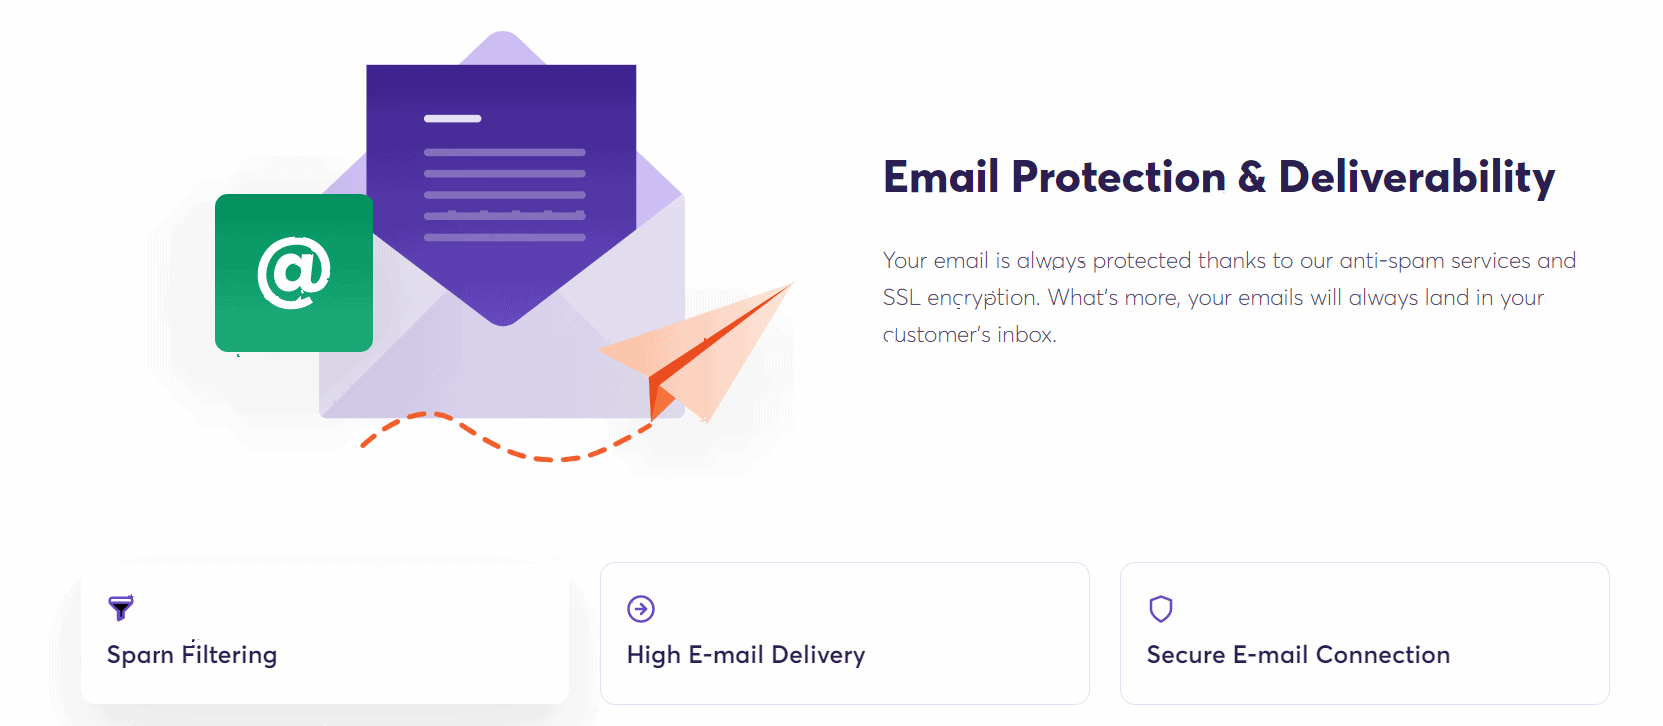 Email Protection and Deliverability- Chemicloud Review